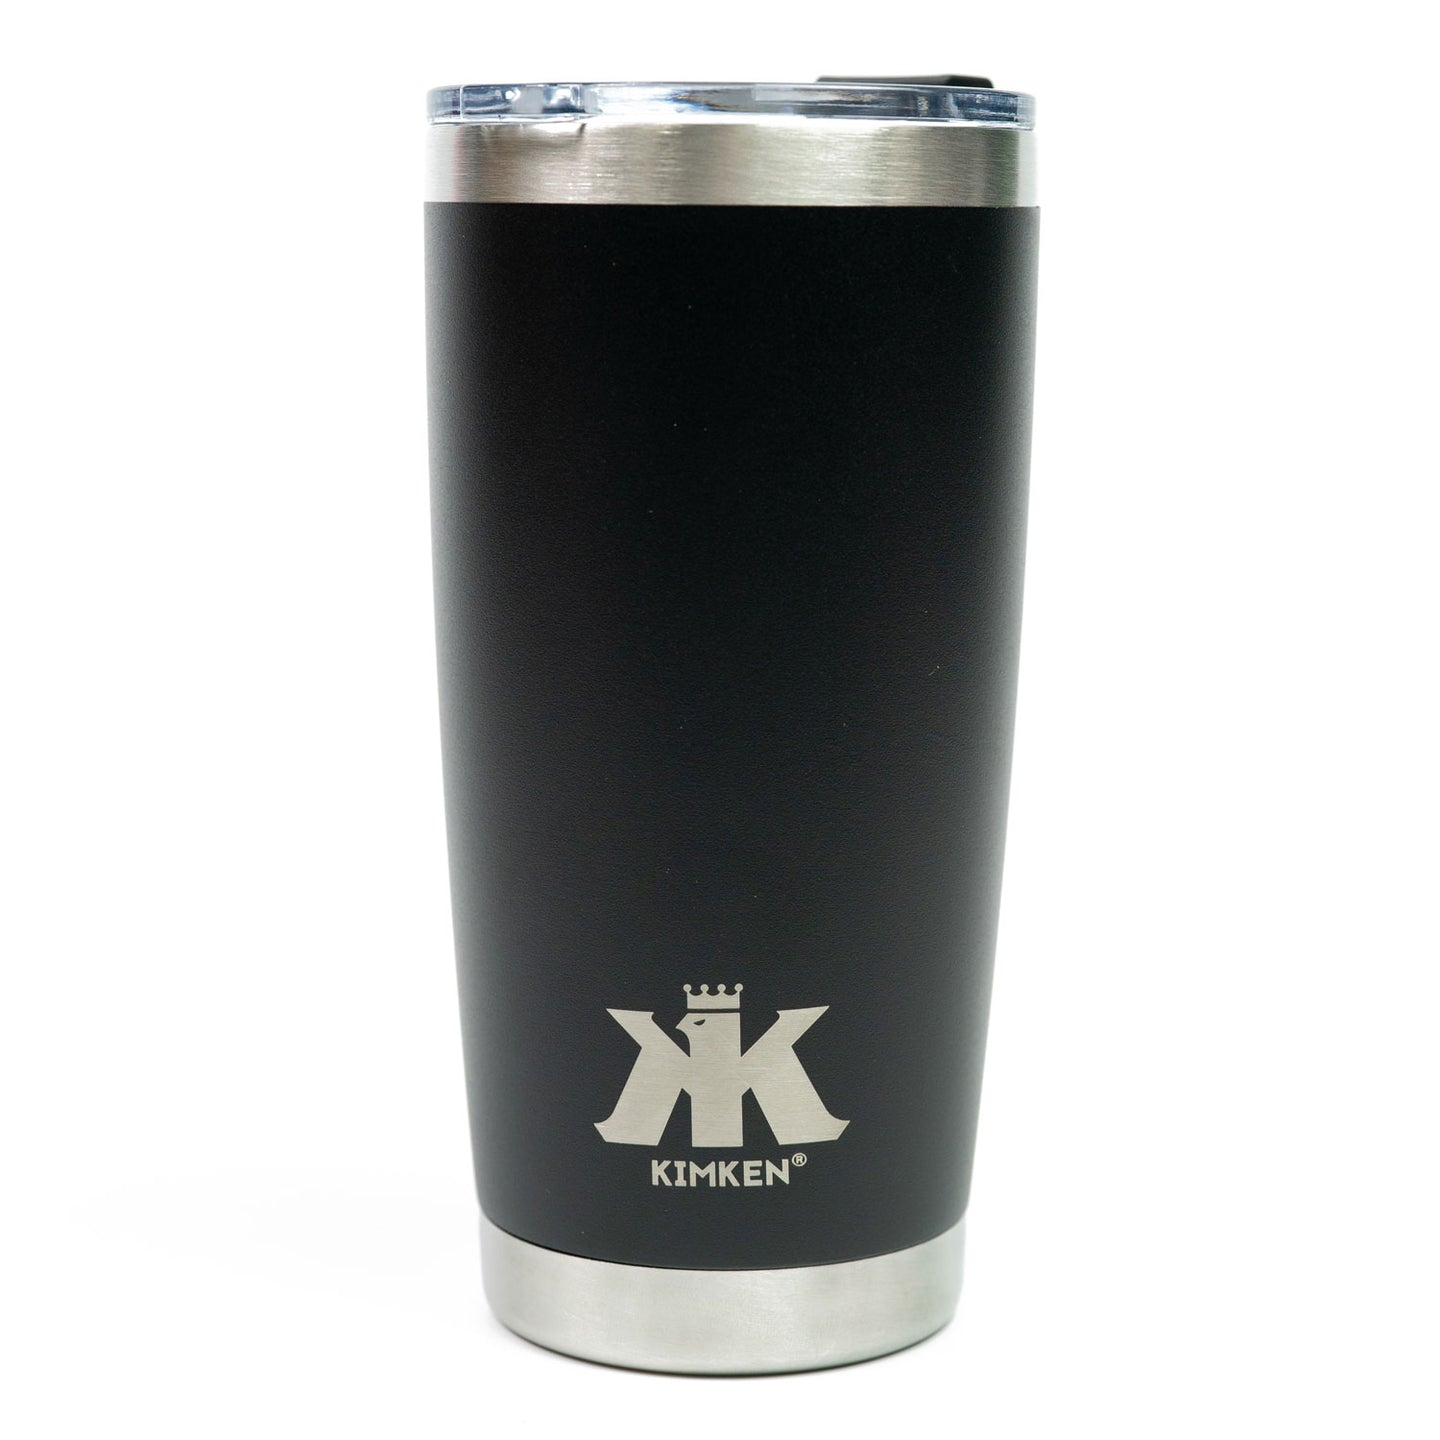 KIMKEN 20oz(590ml) Tumblr